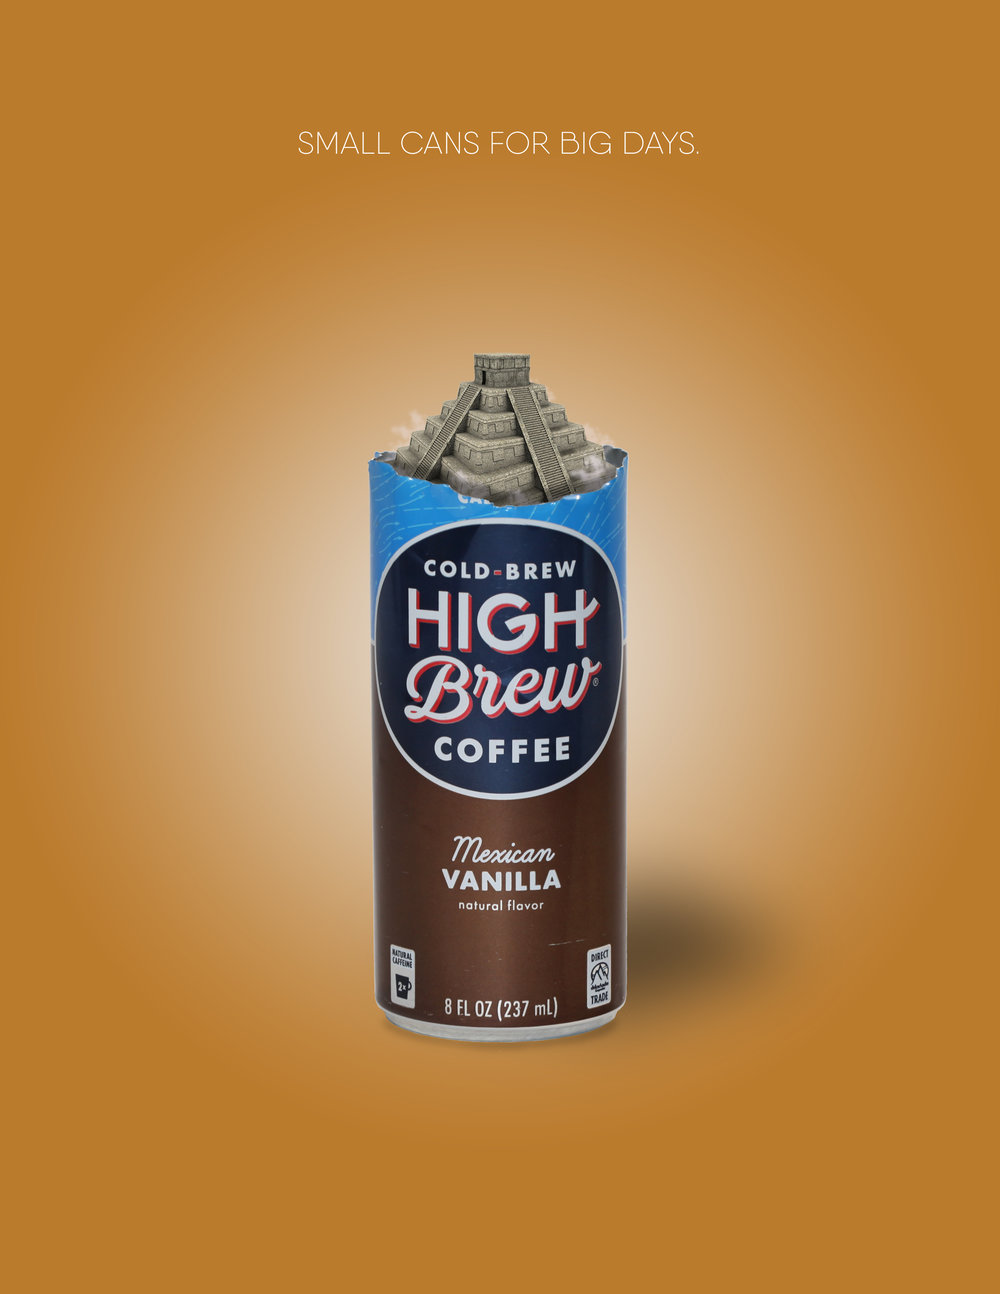 Print campaign created for High Brew Coffee